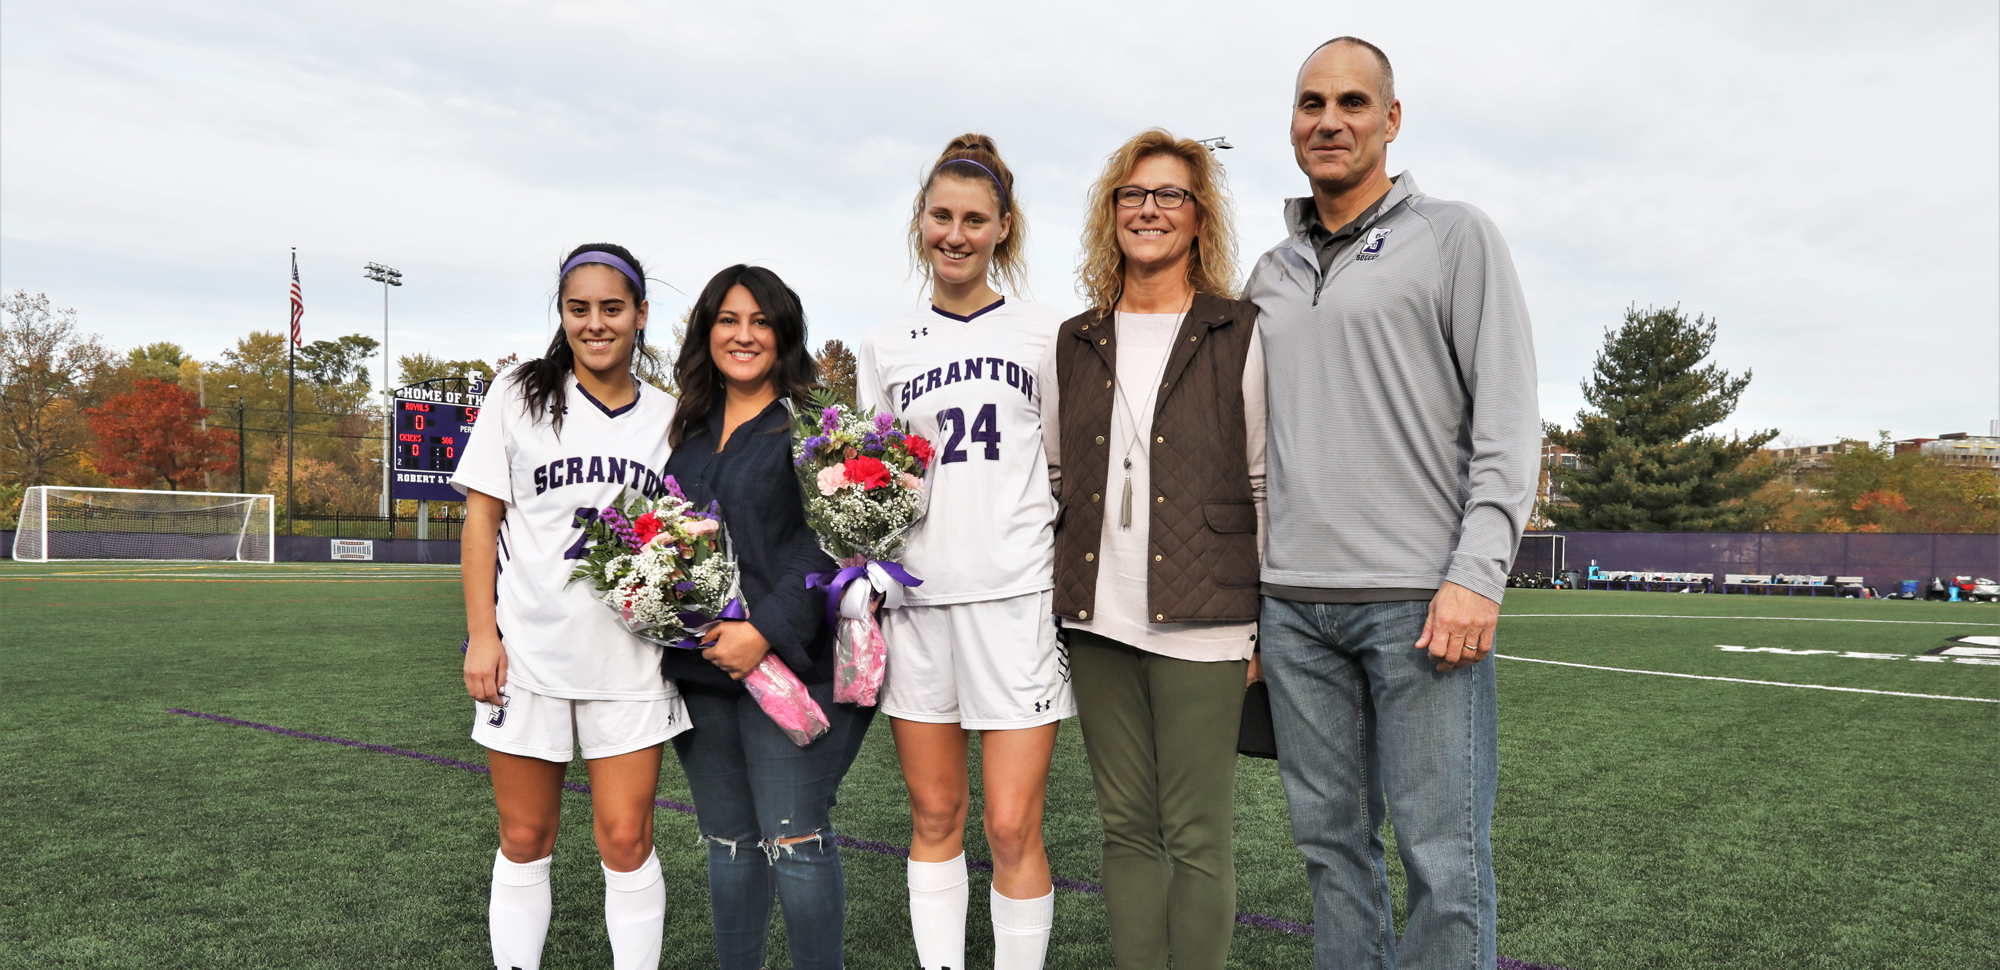 Seniors Ashley Carabajal and Becca Russo were honored in a pregame ceremony before Saturday's match versus Susquehanna.  © Photo by Timothy R. Dougherty / doubleeaglephotography.com